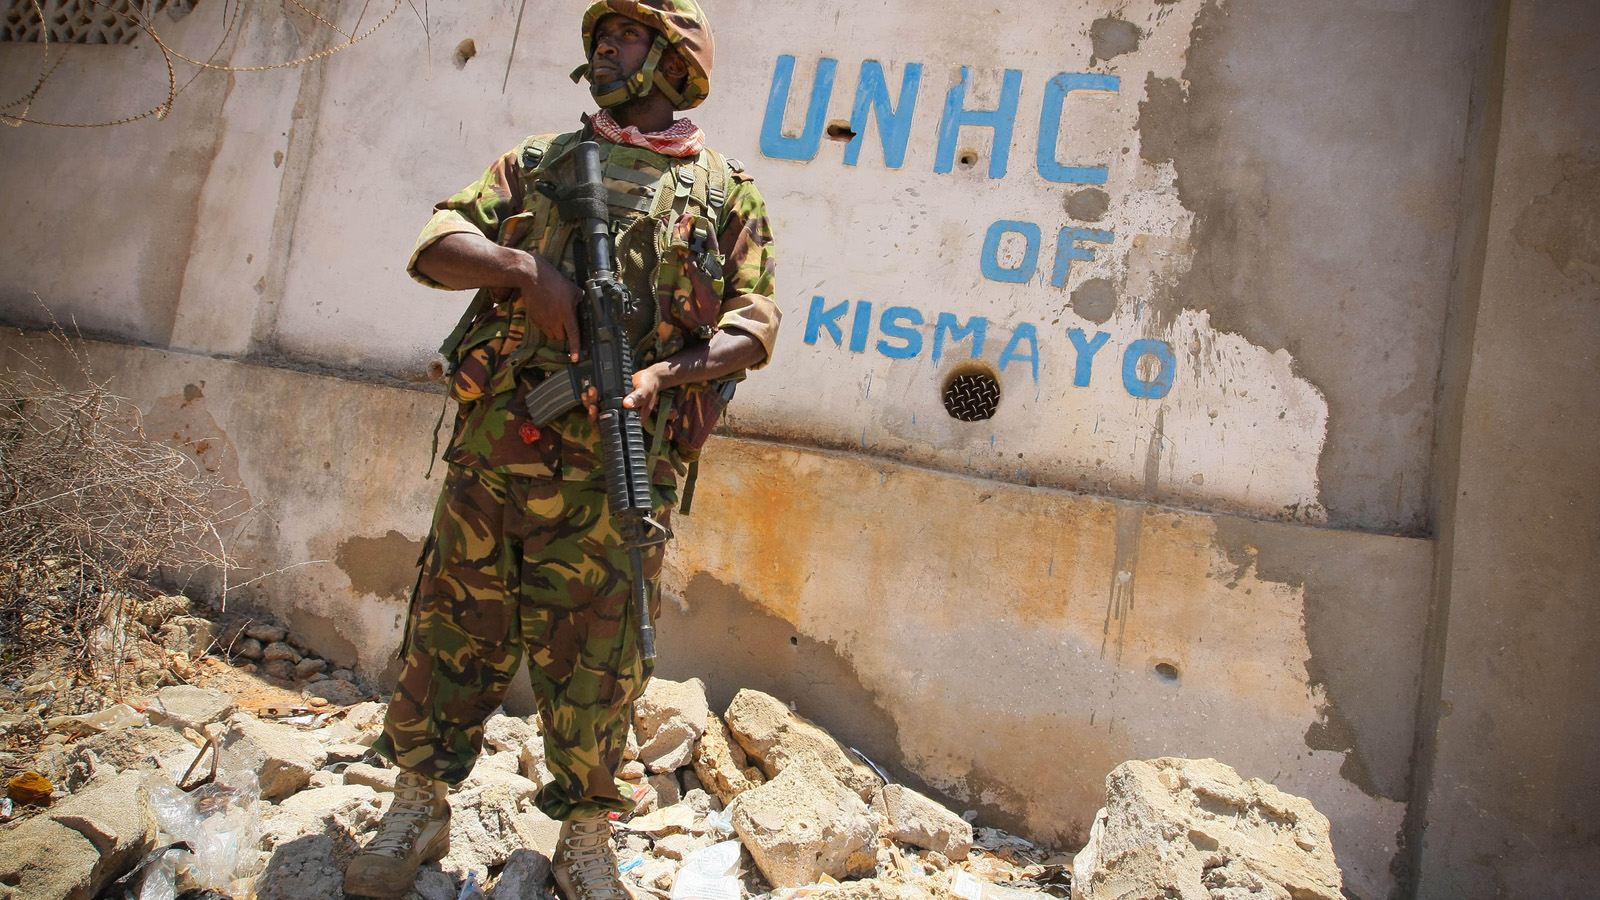 A soldier serving with the Kenyan Contingent of the African Union Mission in Somalia (AMISOM) stands guard infront of the former compound housing the offices of the United Nations High Commission for Refugees (UNHCR) while a combat engineering team sweeps